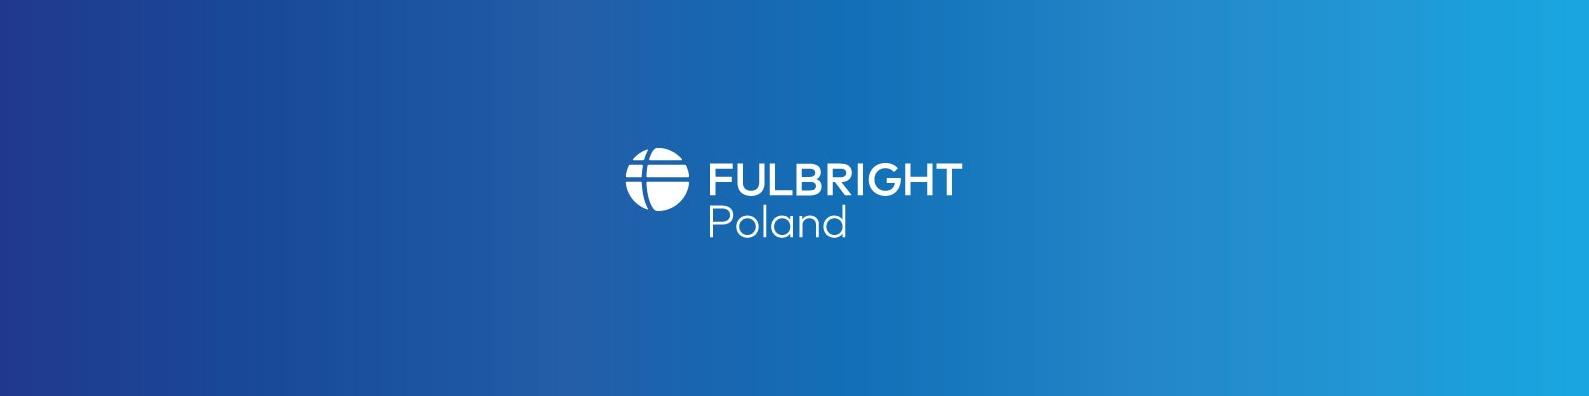 Fulbright 2020